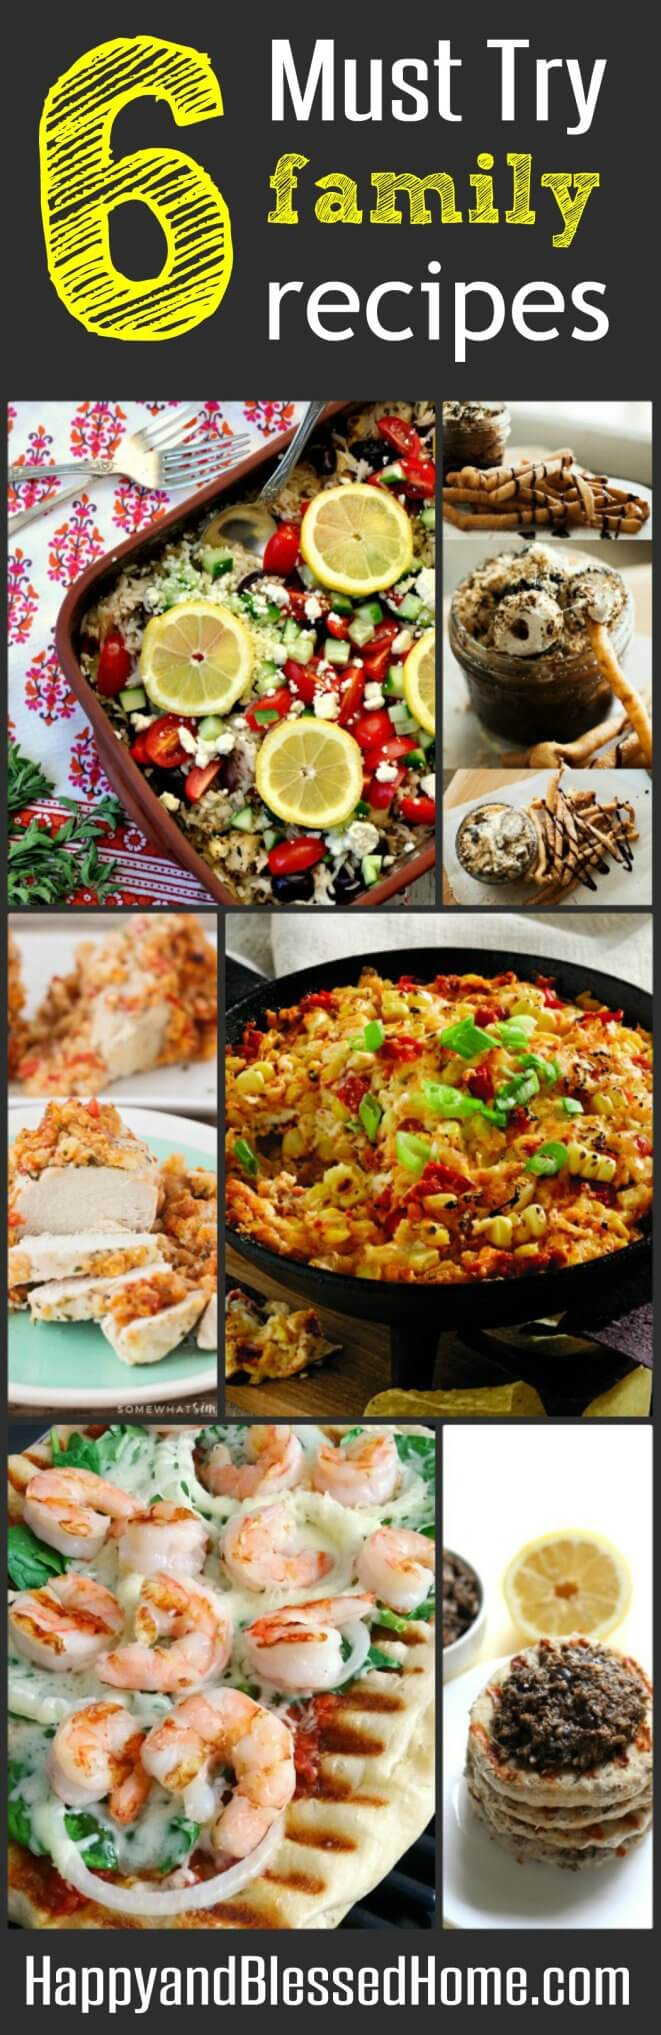 6 Must Try Family Recipes